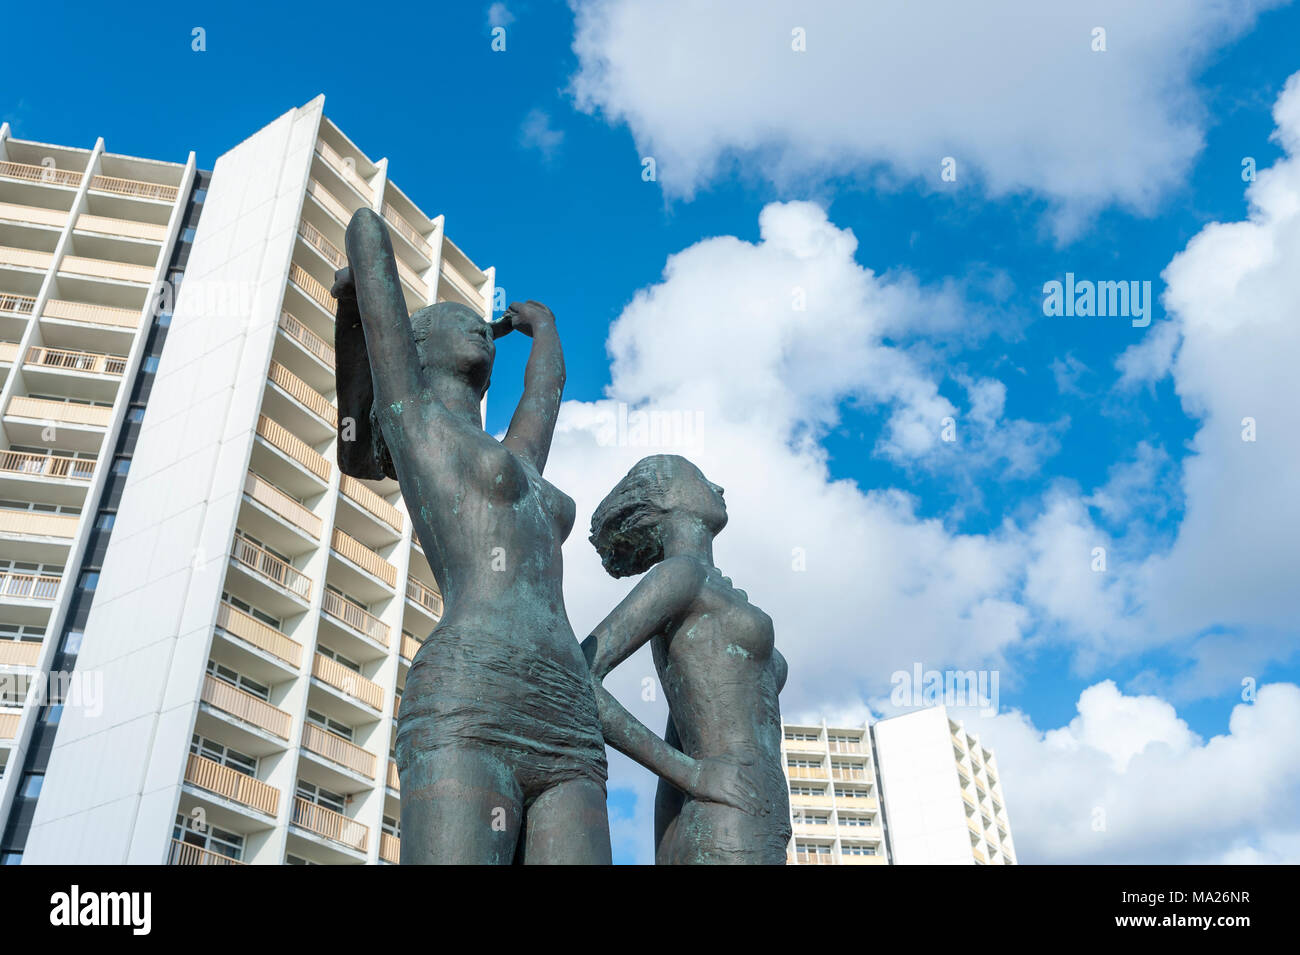 Bronze sculpture, Girl on the south beach, in front of the facade of the Hotel and holiday center IFA, Burgtiefe, Fehmarn, Baltic Sea, Schleswig-Holst - Stock Image